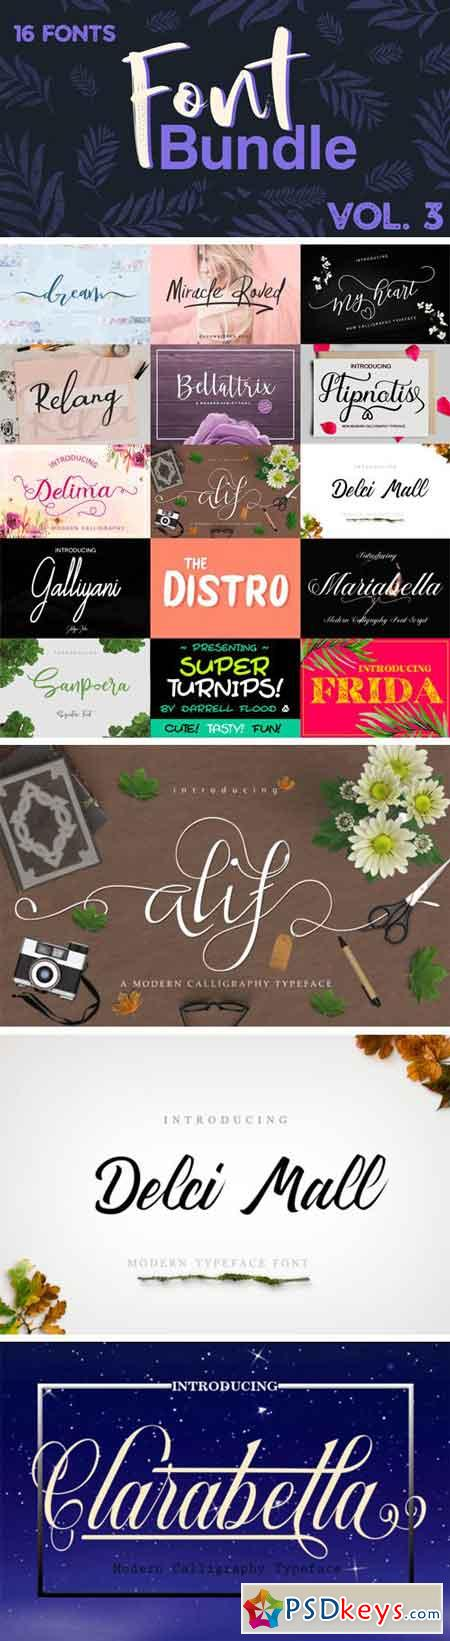 16 Premium Fonts Bundle Vol. 3